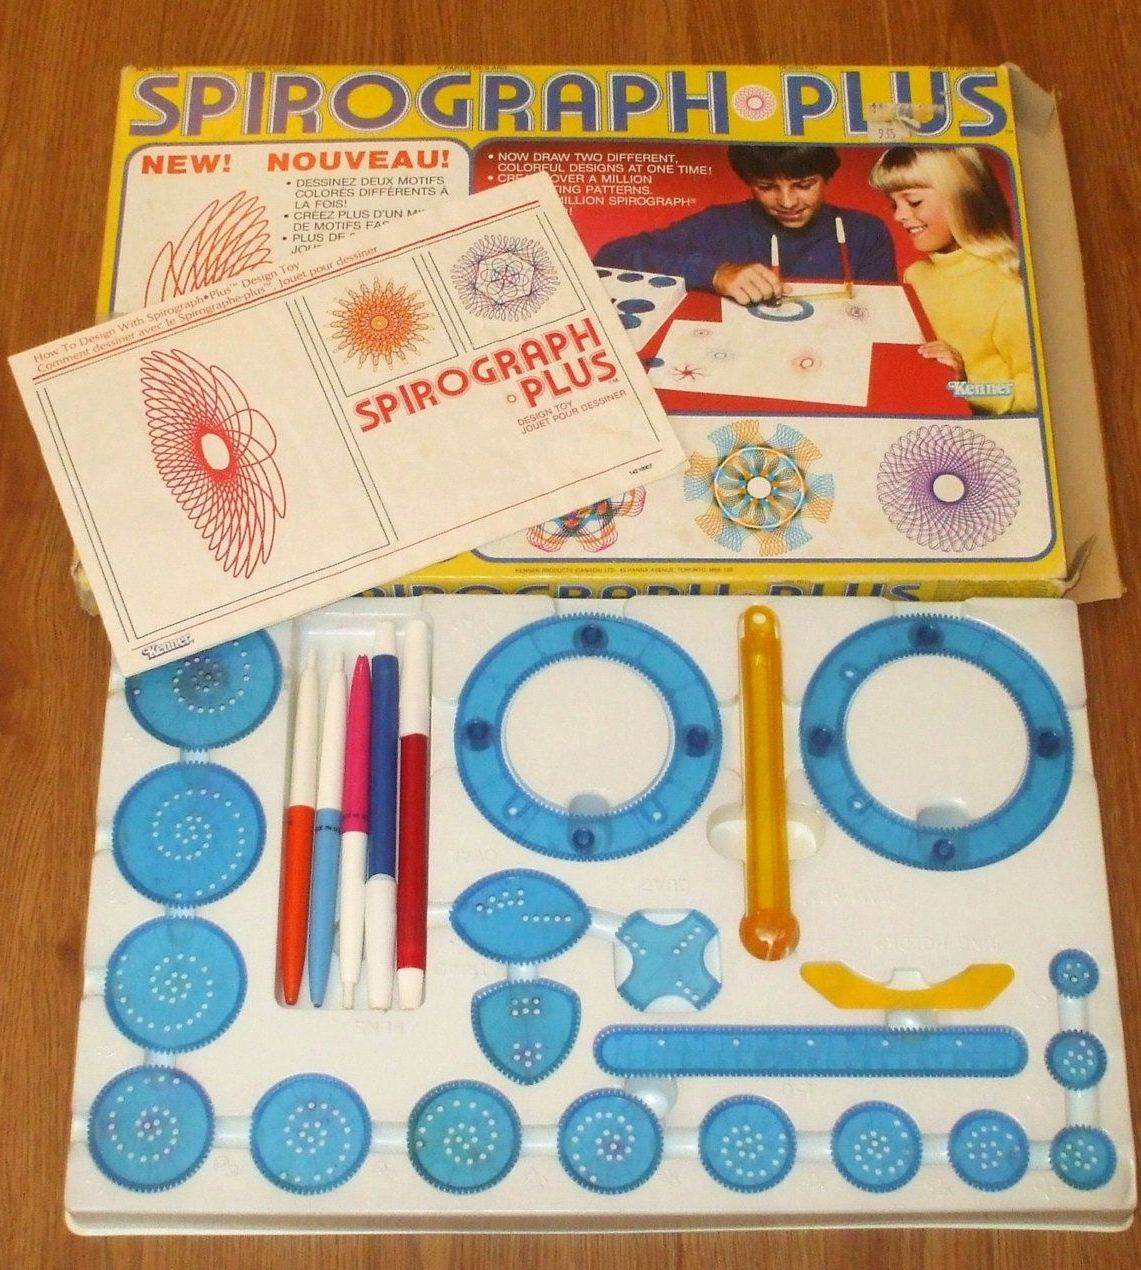 A Spirograph Plus box from the 1980s